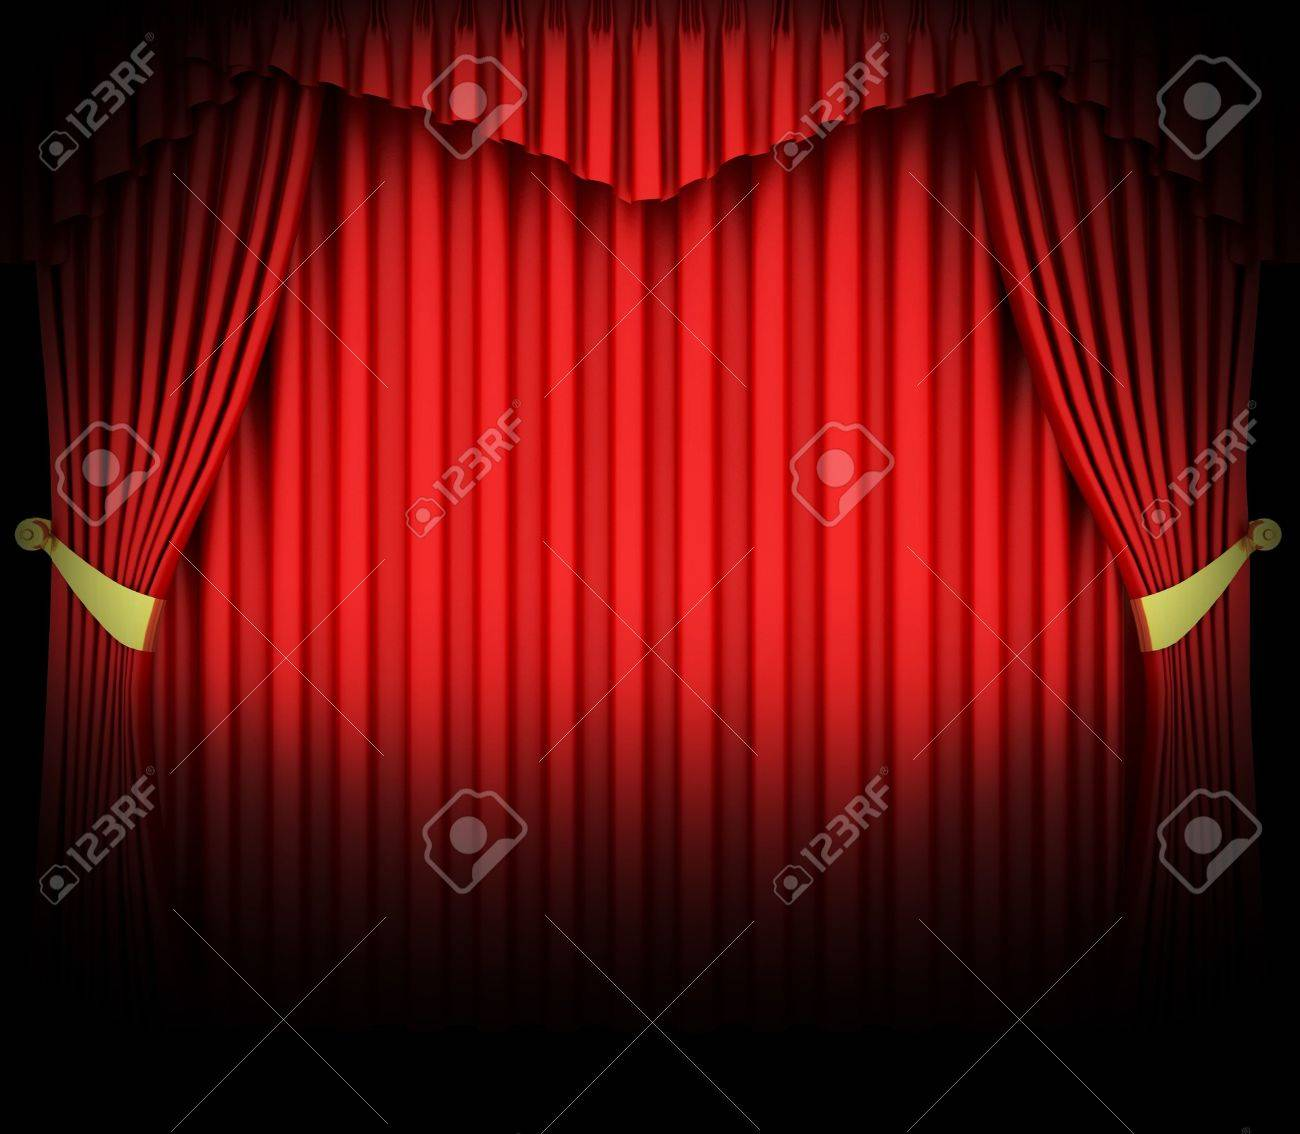 Empty stage curtains with lights - Red Theater Curtain With Spot Lights Stock Photo 6490943